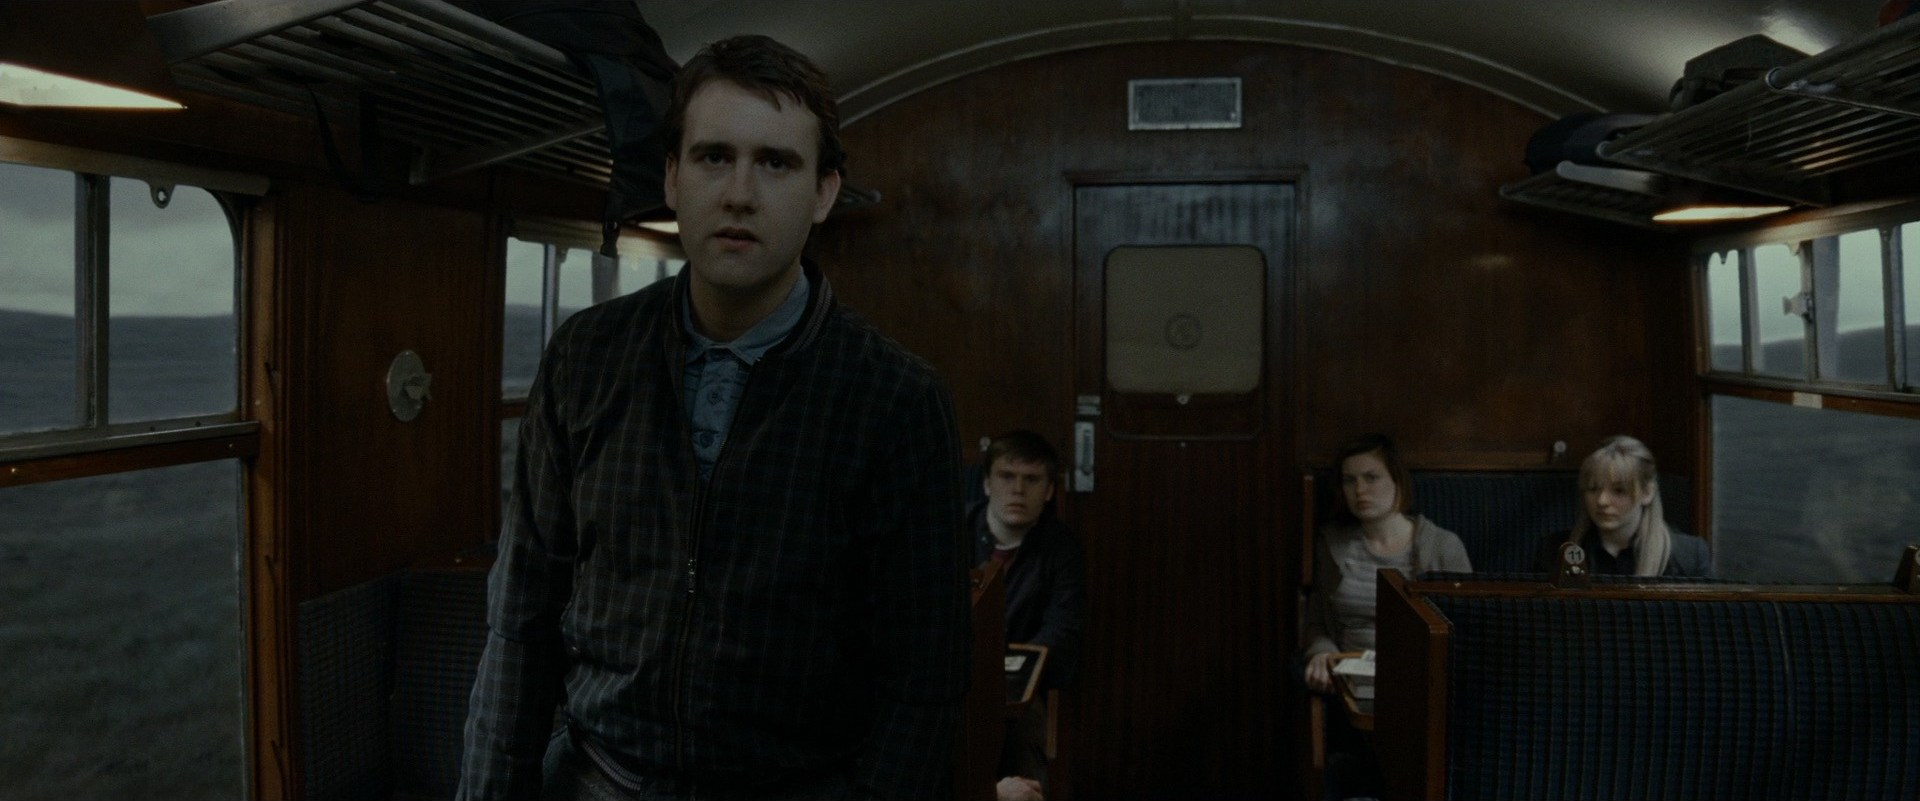 File:Neville on hogwarts express.jpg